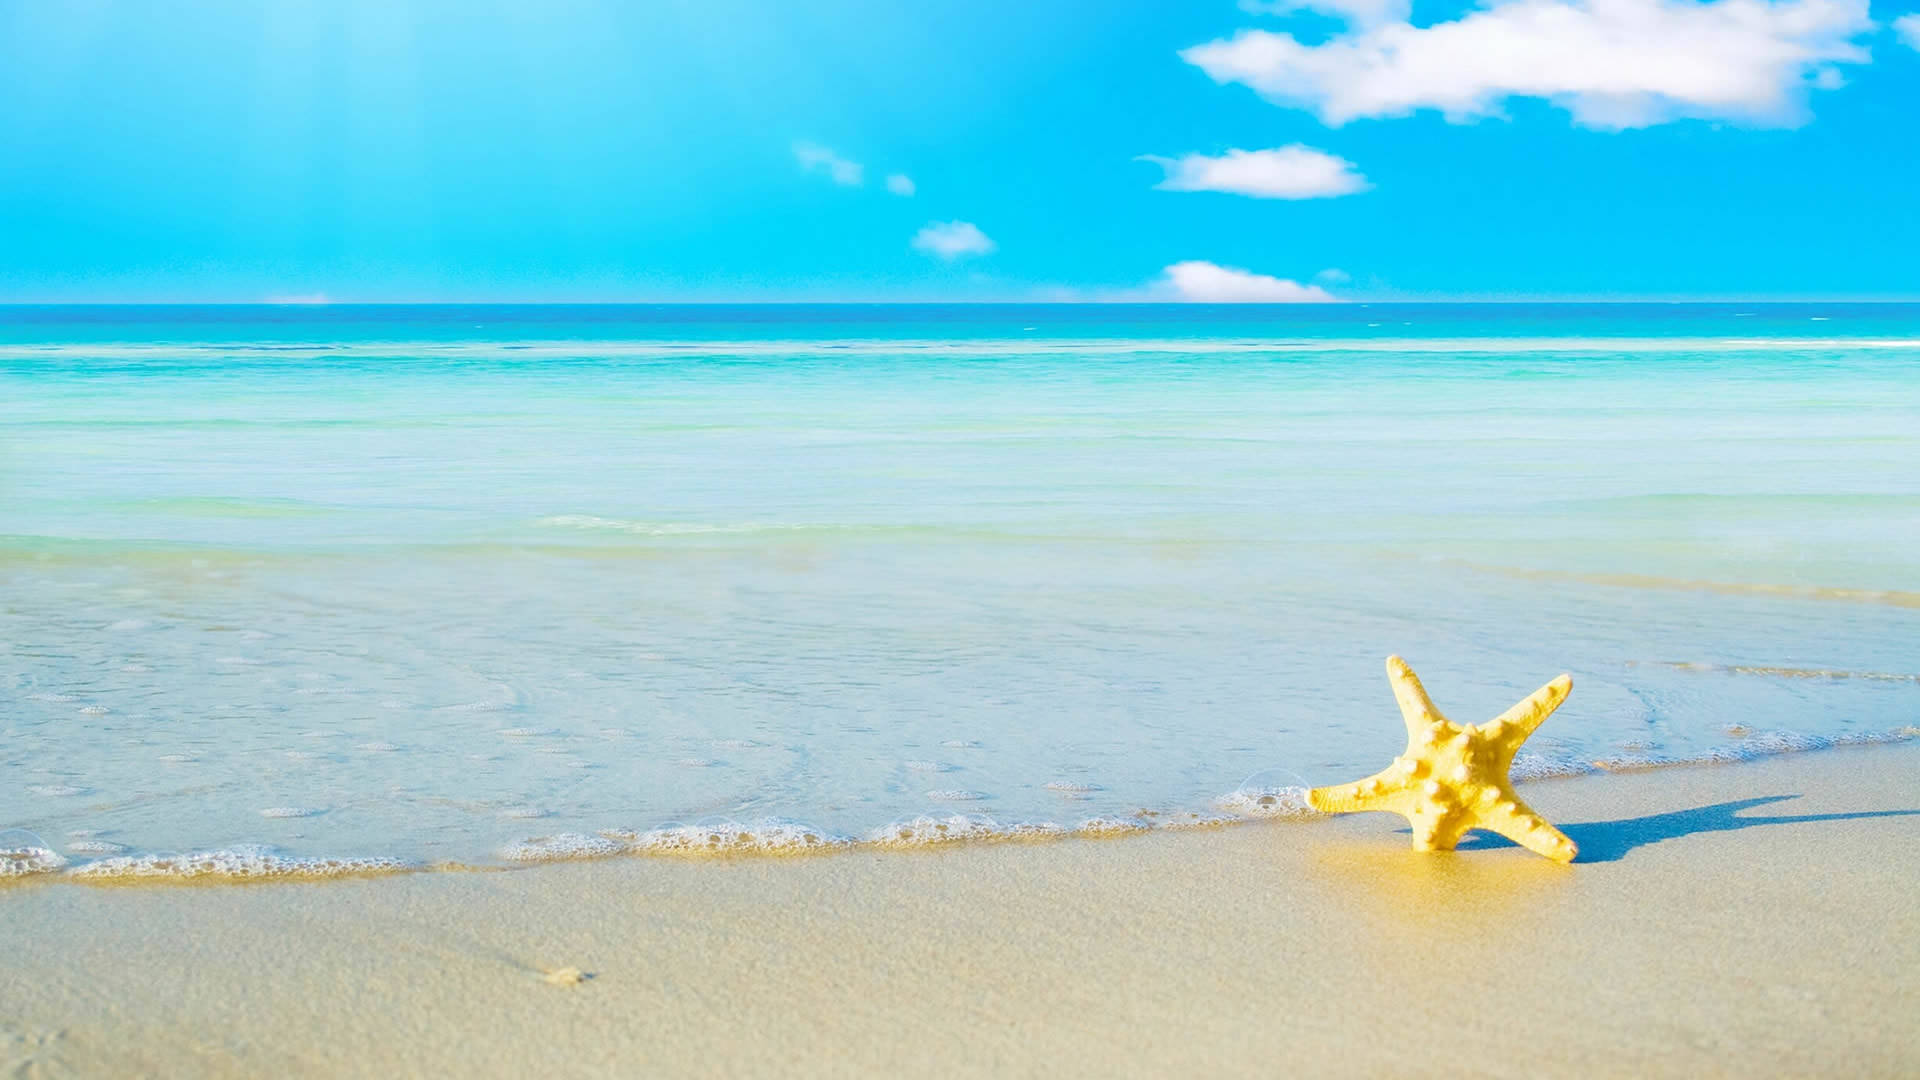 Summer Beach Wallpaper Hd Resolution Flip Wallpapers Download 1920x1080